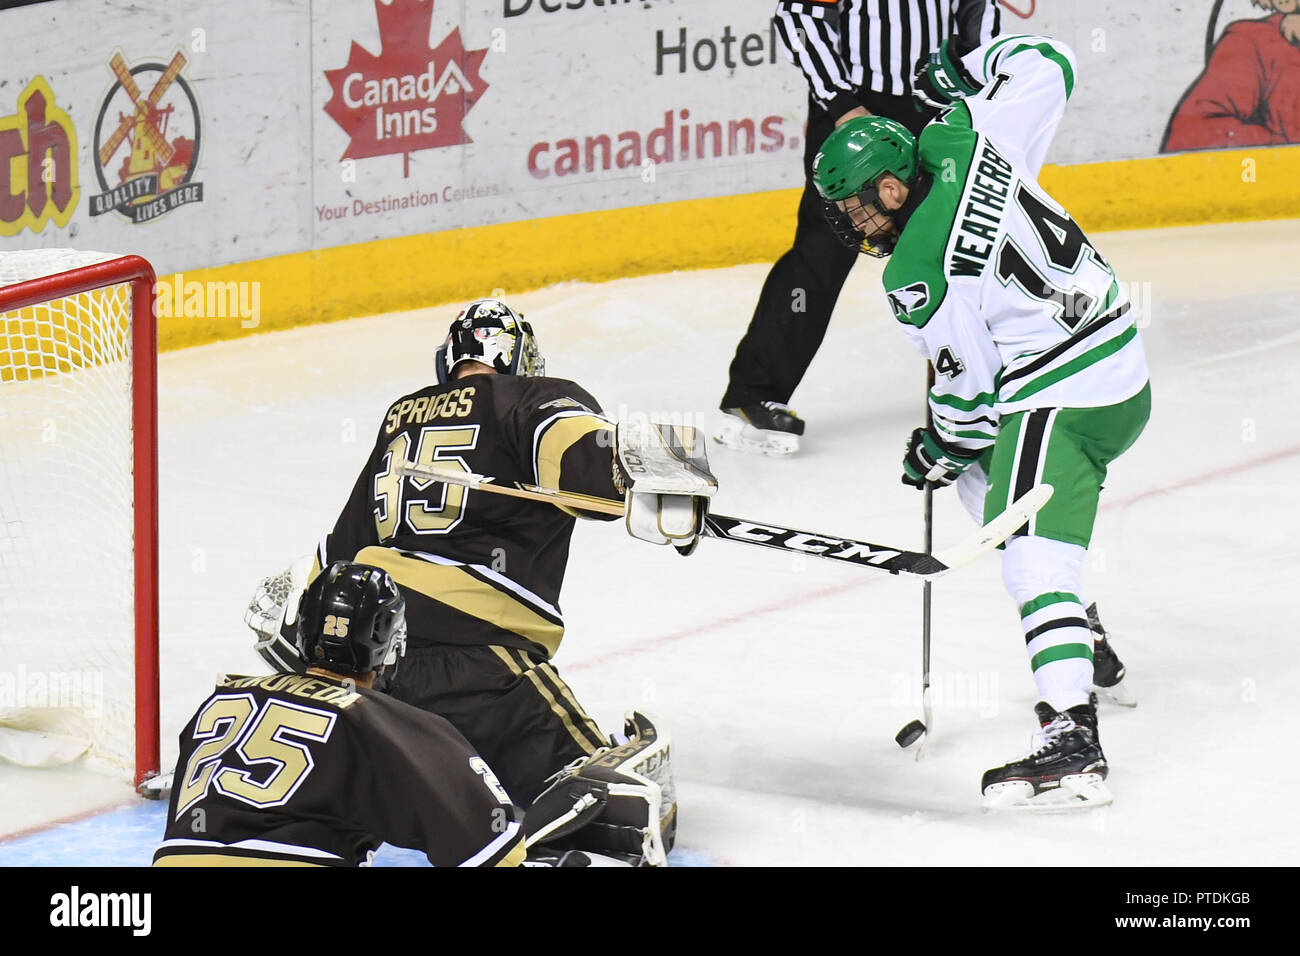 October 6, 2018 North Dakota Fighting Hawks forward Jasper Weatherby (14) attempts to shoot the puck on Manitoba Bisons goaltender Byron Spriggs (35) during an exhibition men's college hockey game between the Manitoba Bisons and the University of North Dakota Fighting Hawks at Ralph Engelstad Arena in Grand Forks. North Dakota won 3-2 in overtime. Photo by Russell Hons/CSM Stock Photo